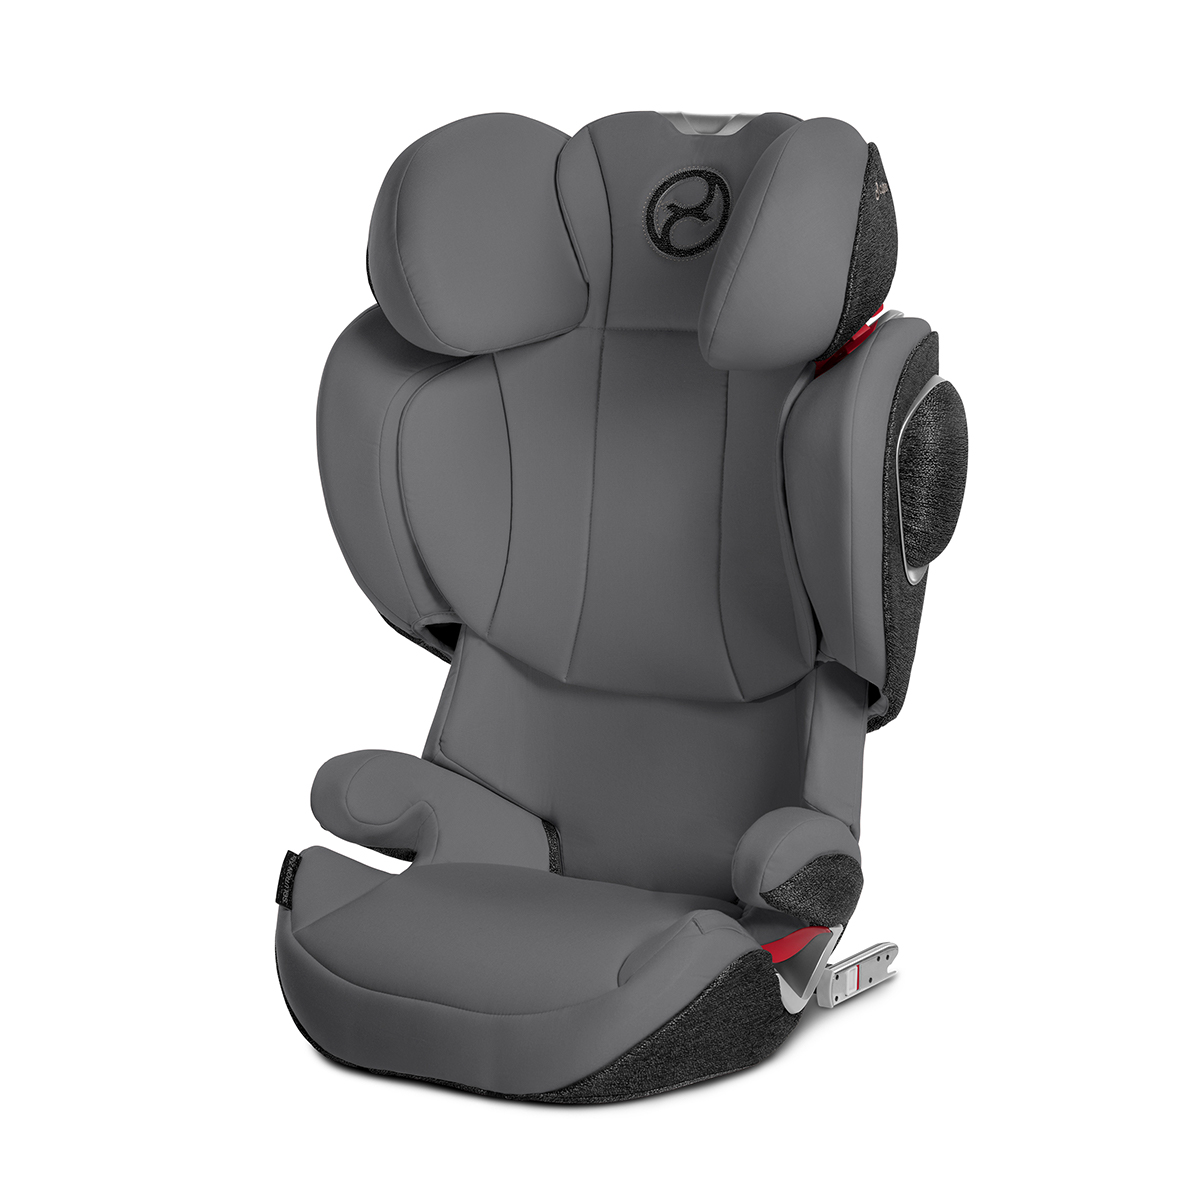 Cybex Z Fix Booster Seat in Manhattan Grey